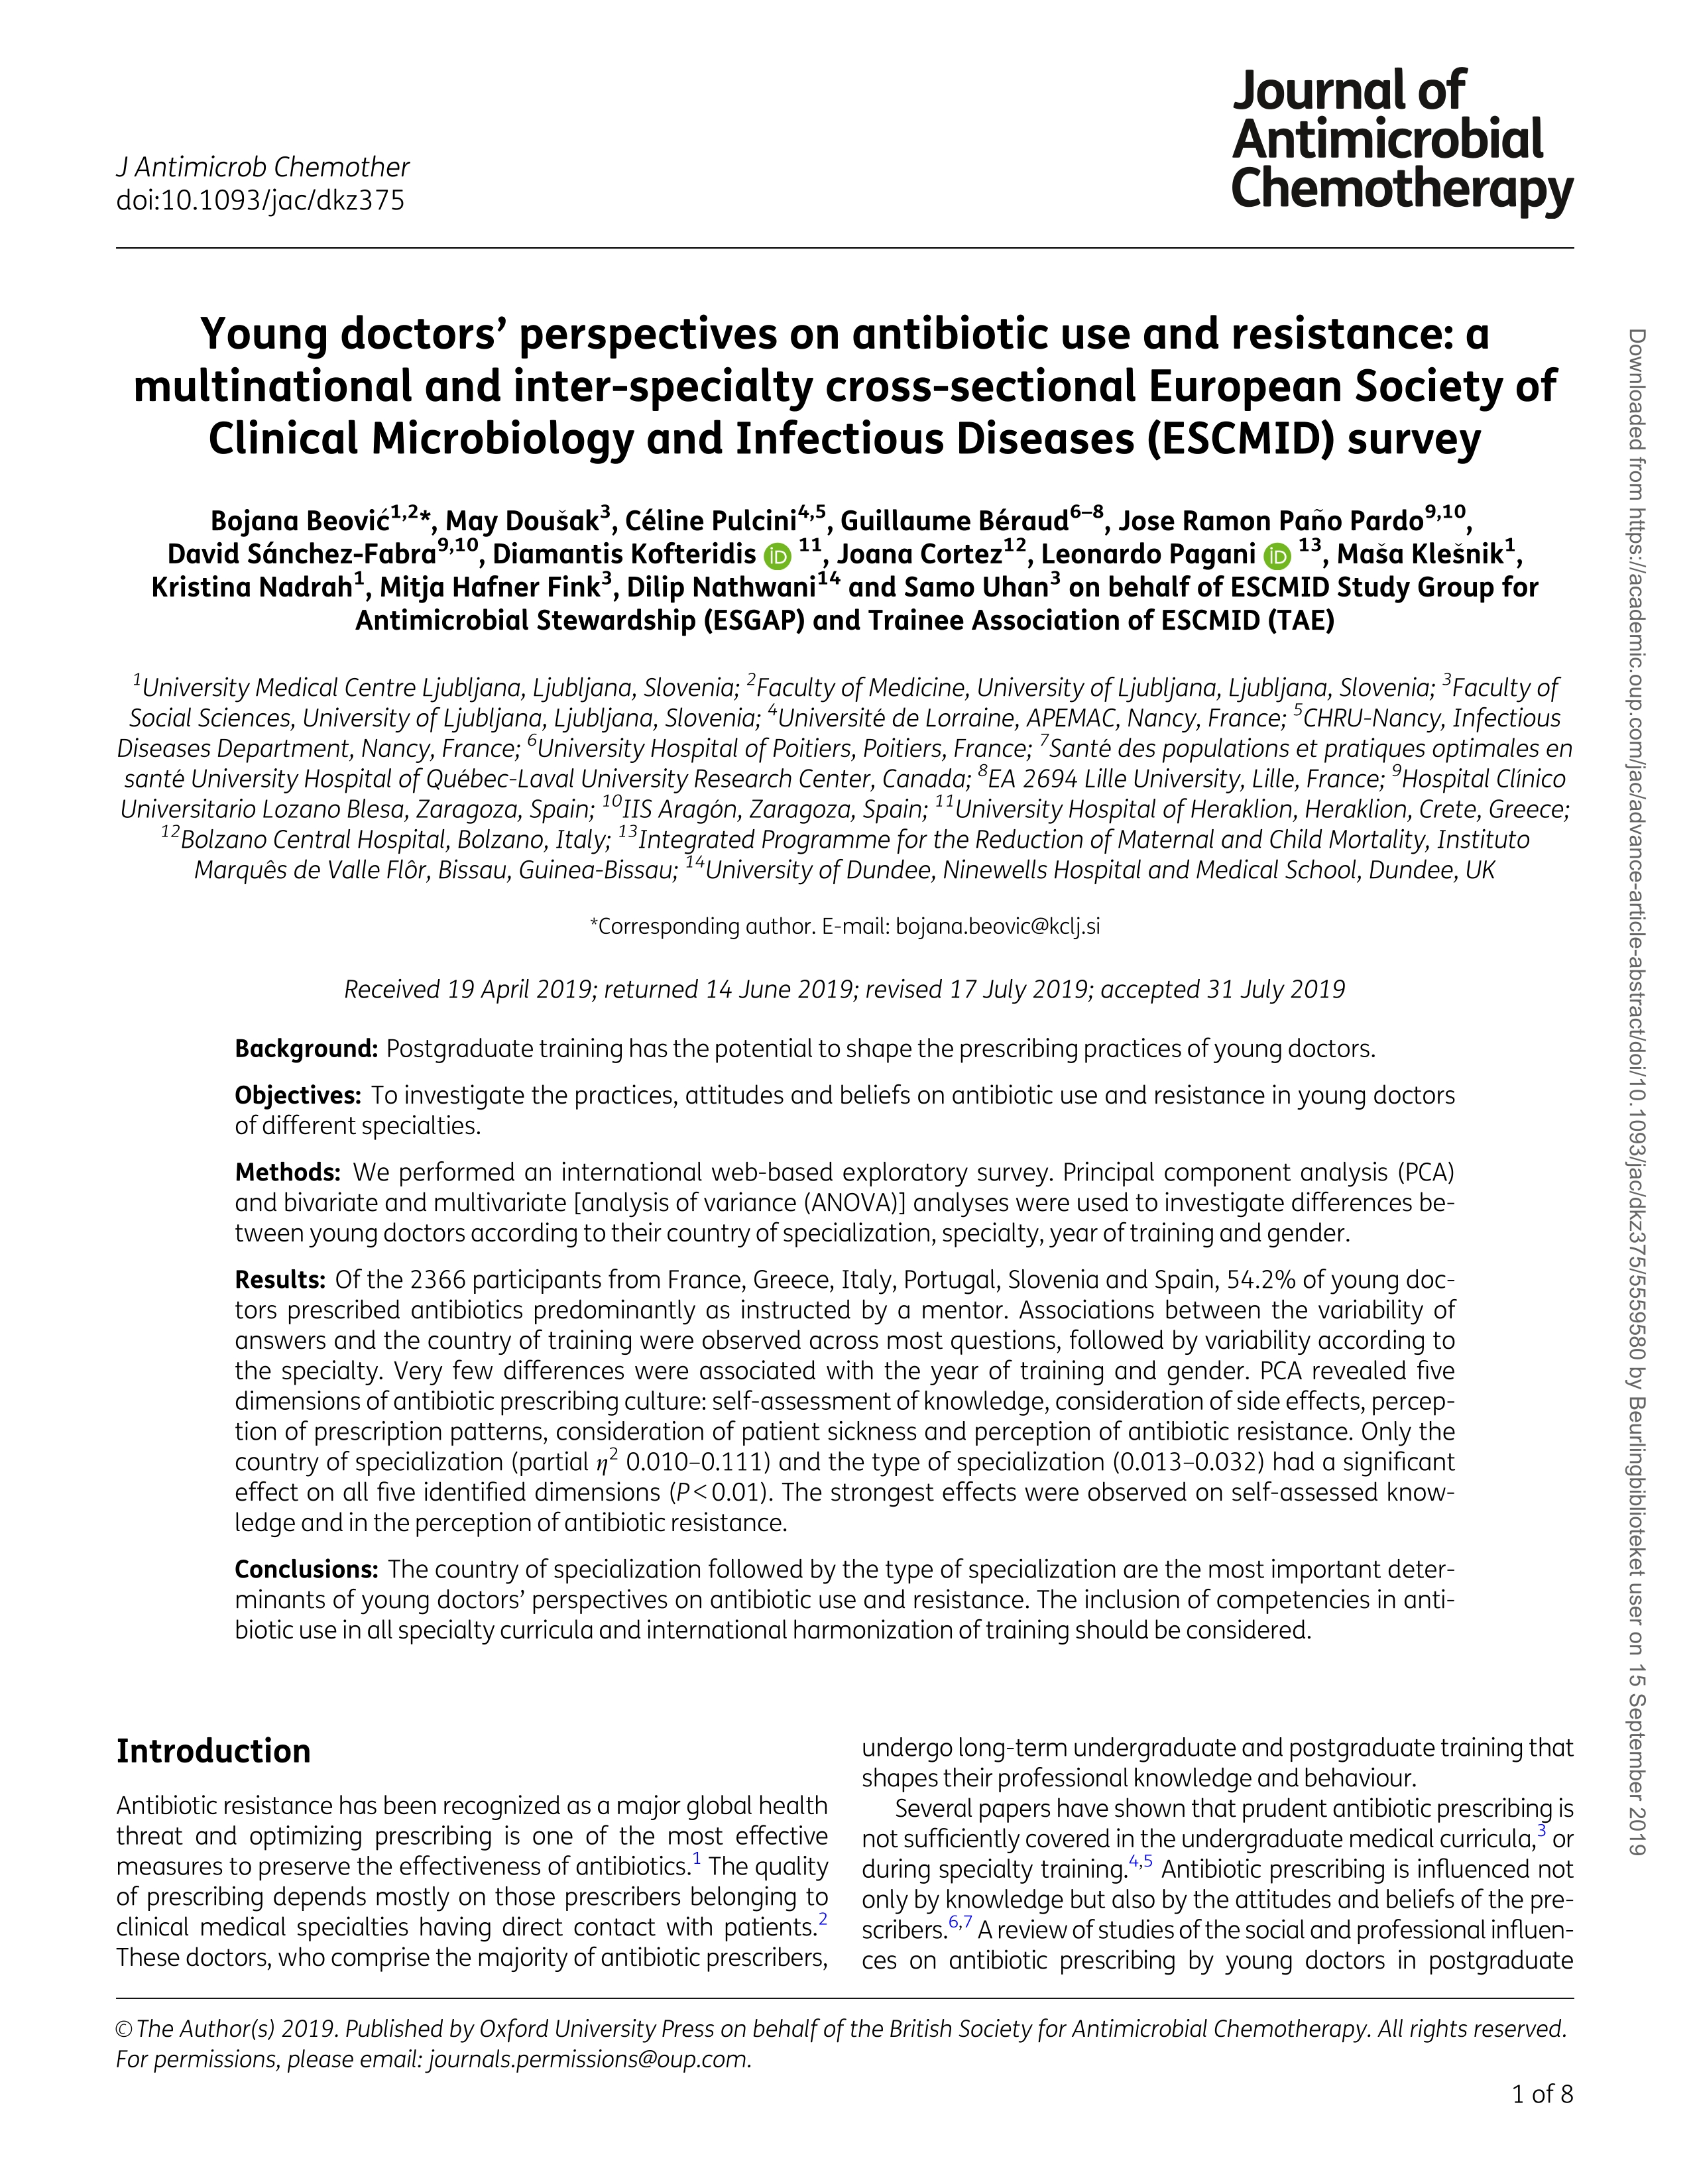 Young doctors' perspectives on antibiotic use and resistance: A multinational and inter-specialty cross-sectional European Society of Clinical Microbiology and Infectious Diseases (ESCMID) survey